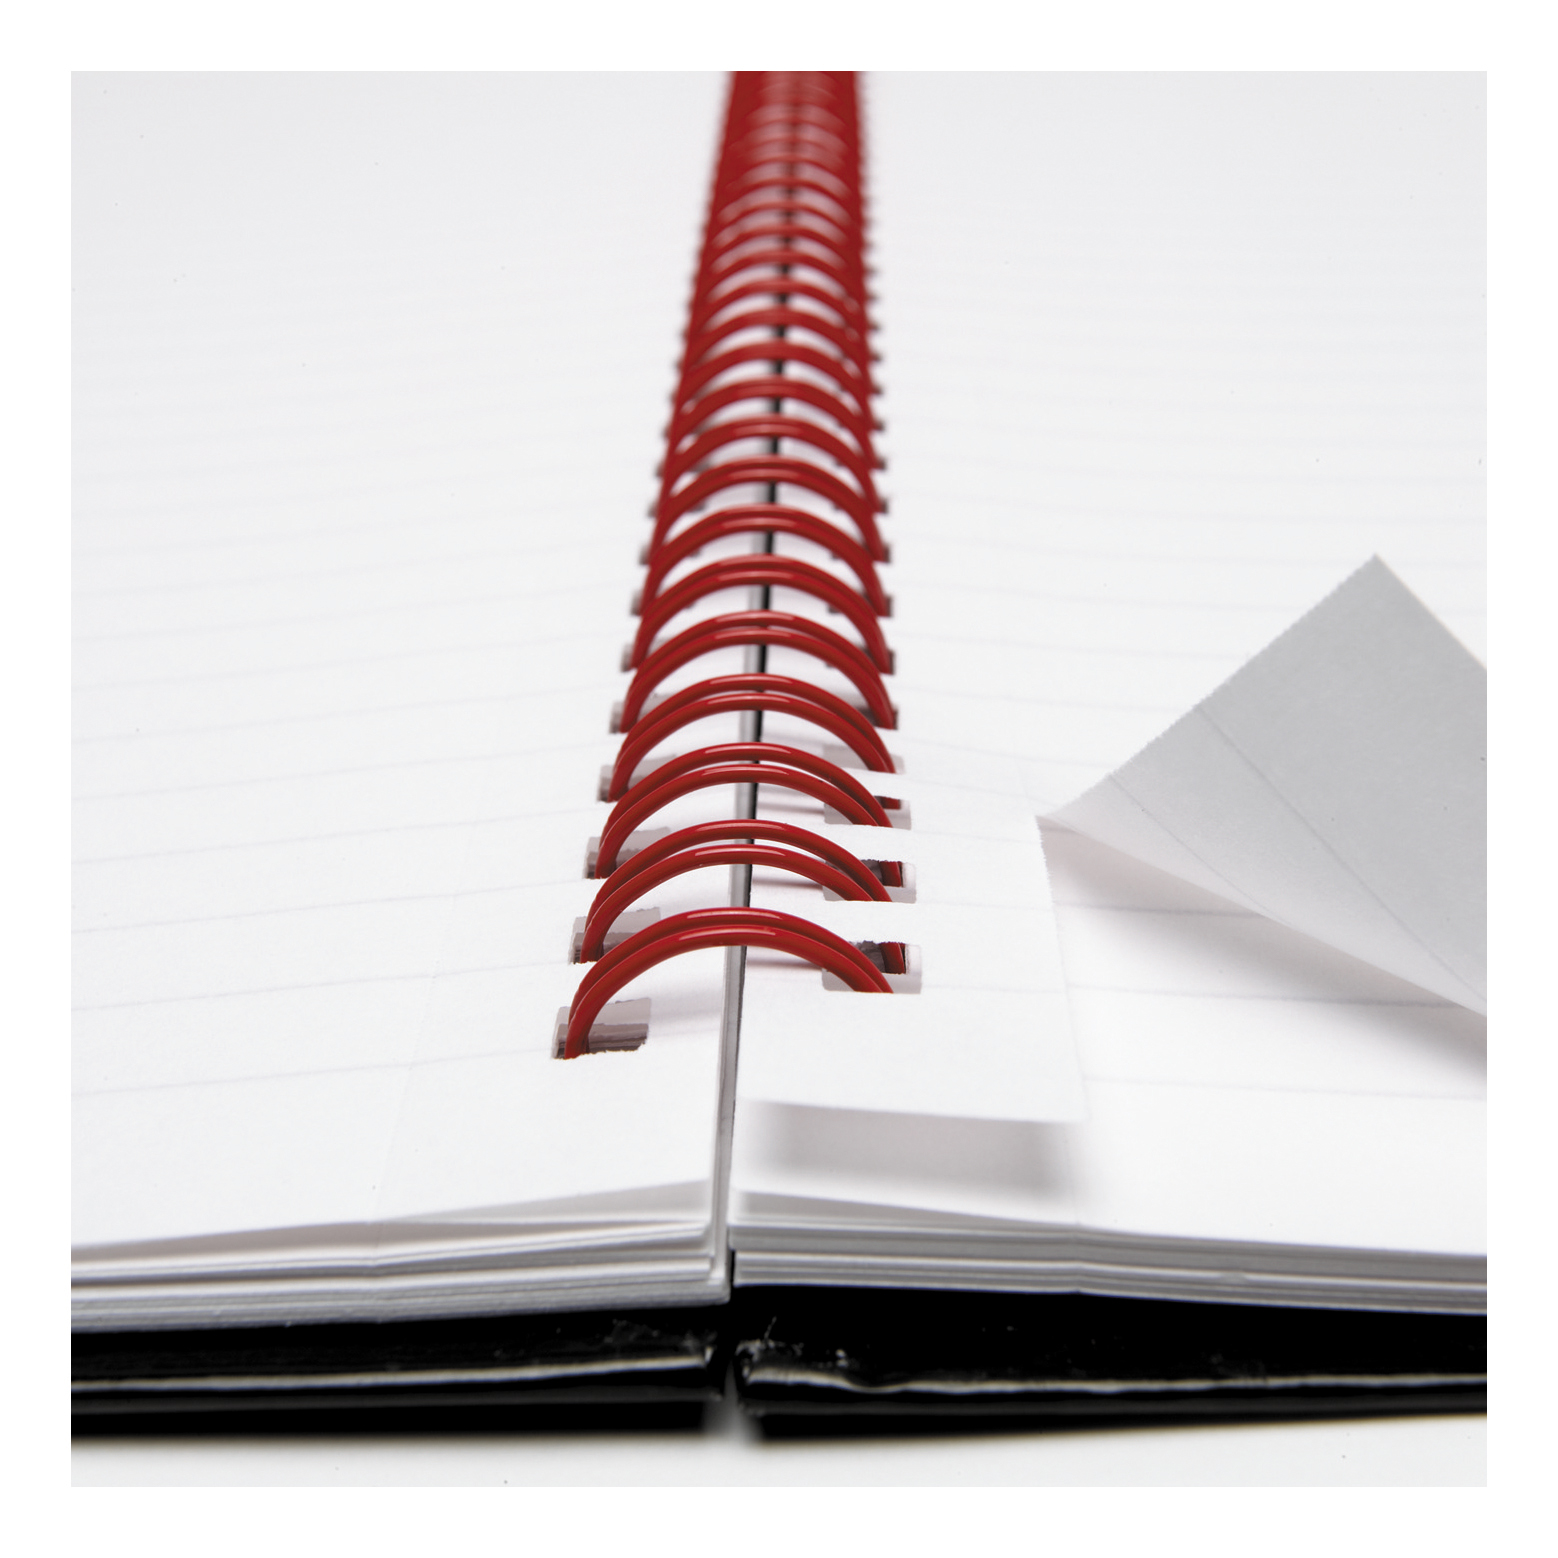 OxfordBlack n Red A4 Glossy Wirebound Hardback Notebook Ruled 140 Pages New